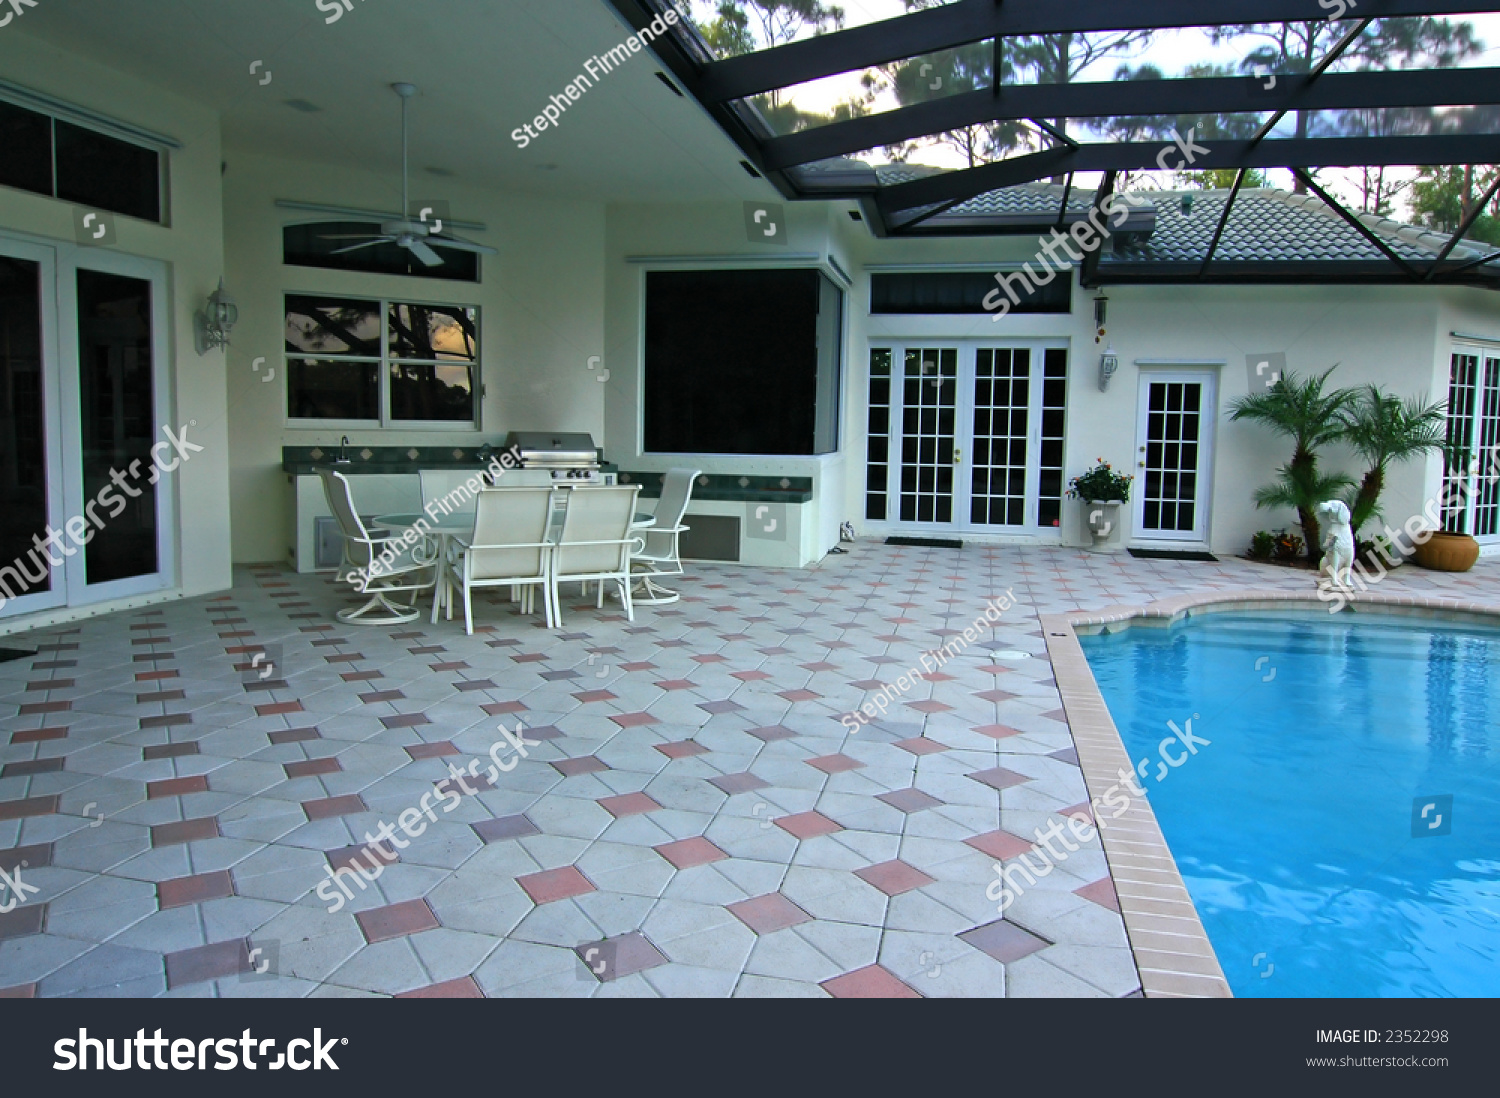 Florida pool and deck stock photo 2352298 shutterstock for Florida pool and deck